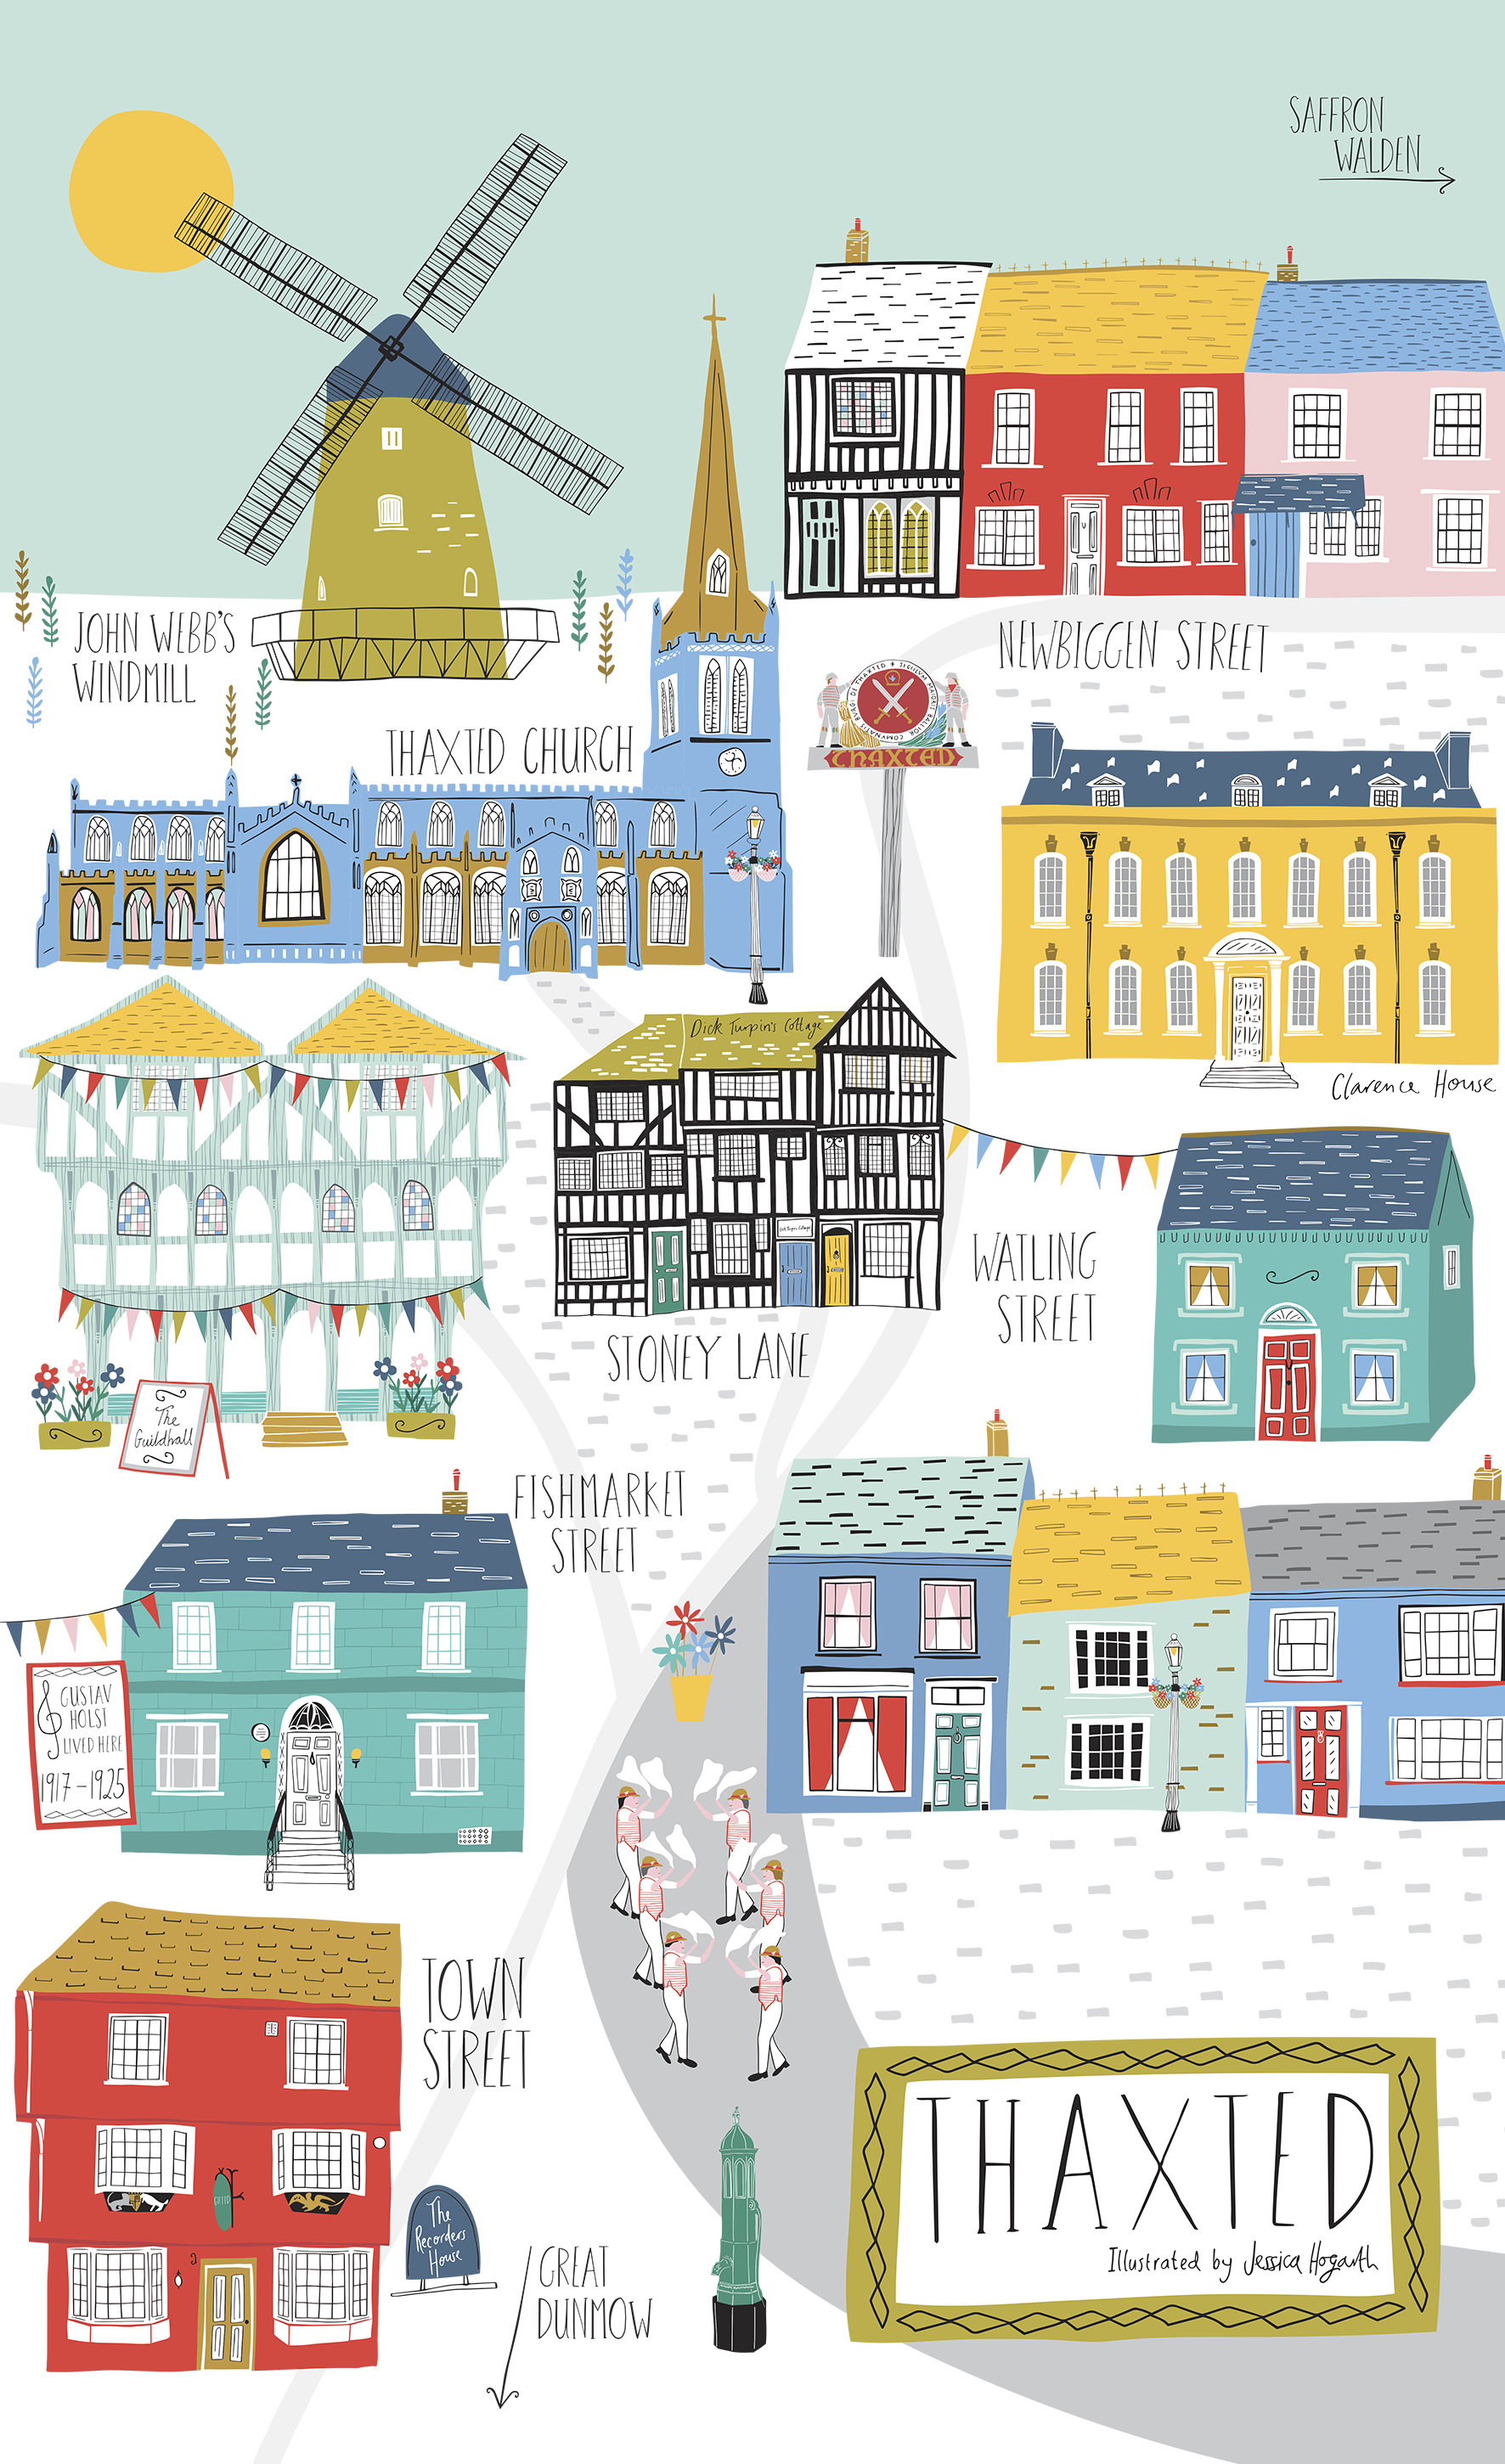 Above: The best selling design that Jessica Hogarth created illustrating Thaxted.